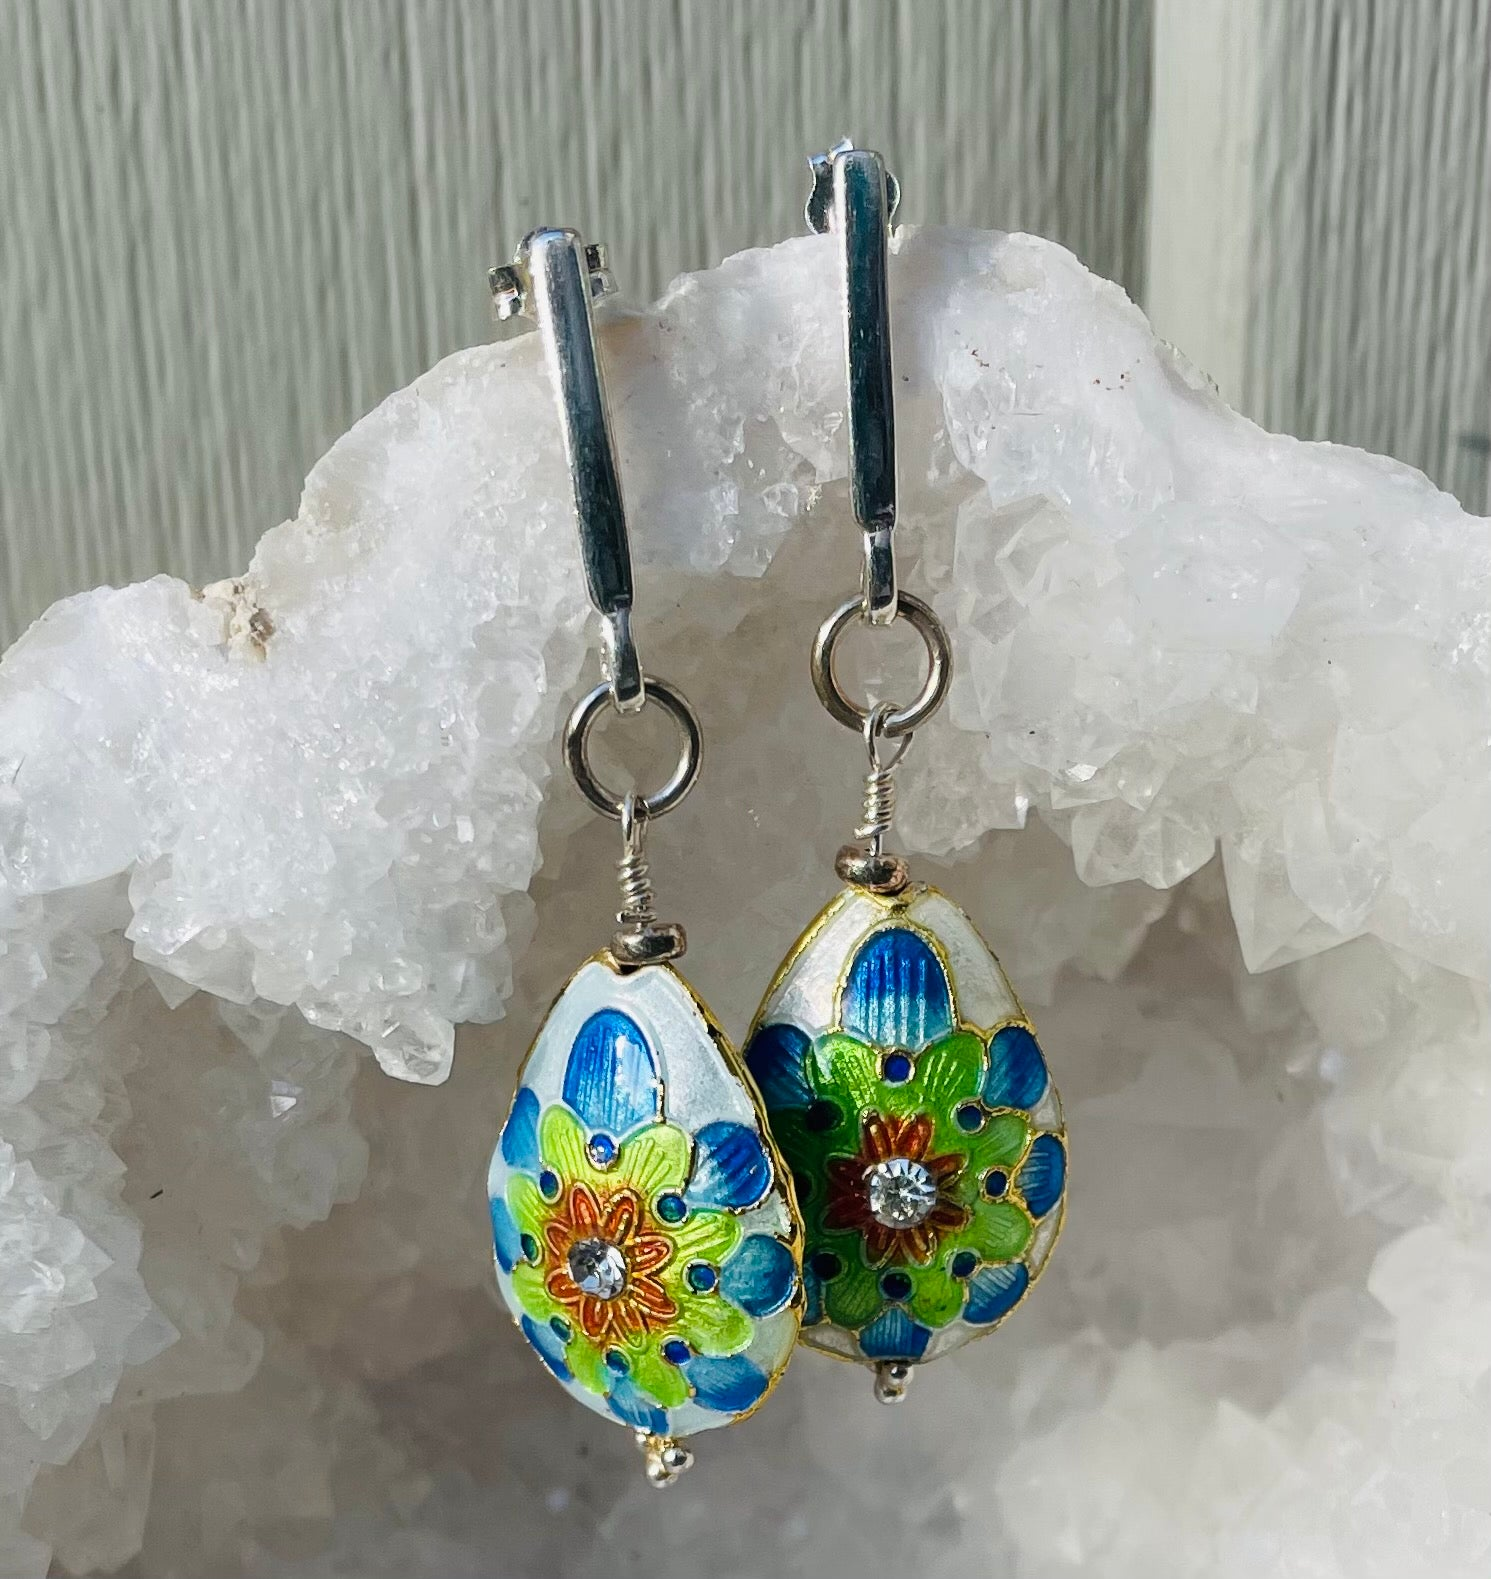 Green Eyed Kitty Vintage Cloisonné Earrings - Pear